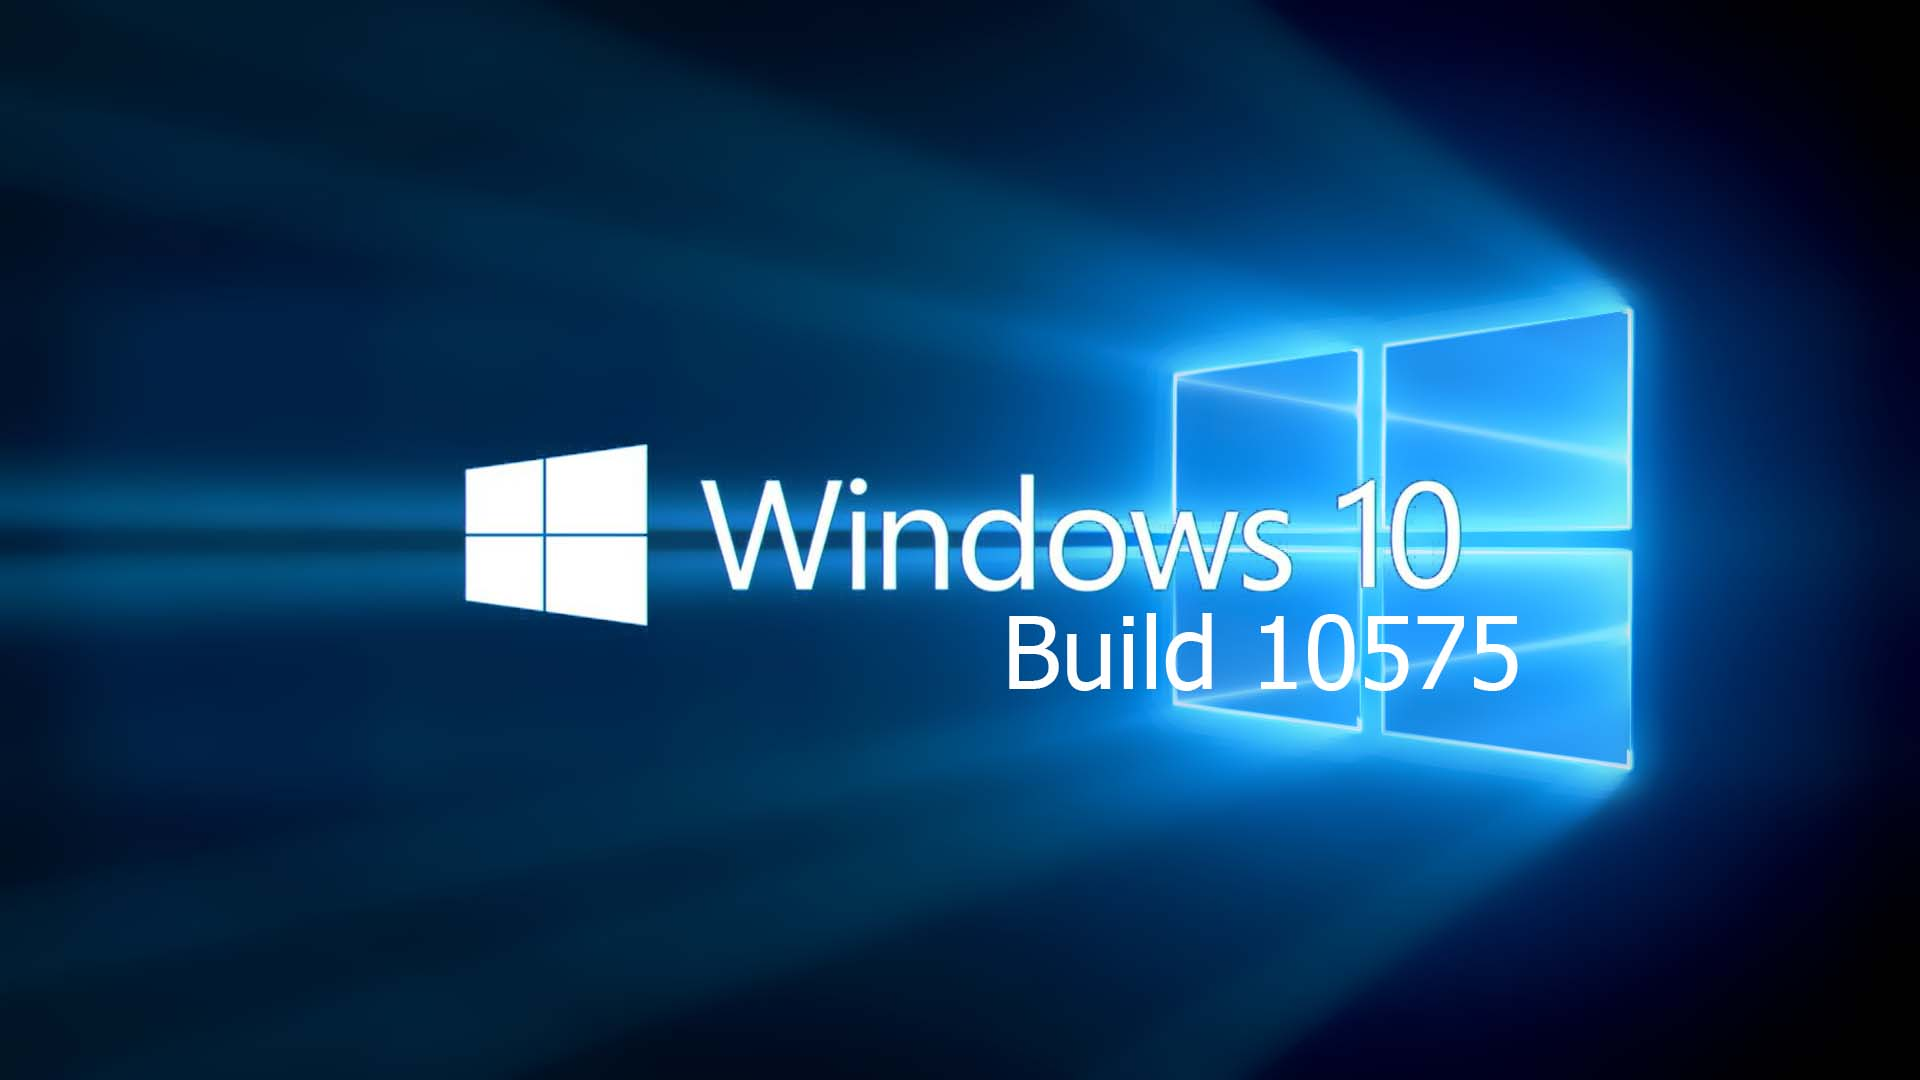 Windows 10 Build 10575